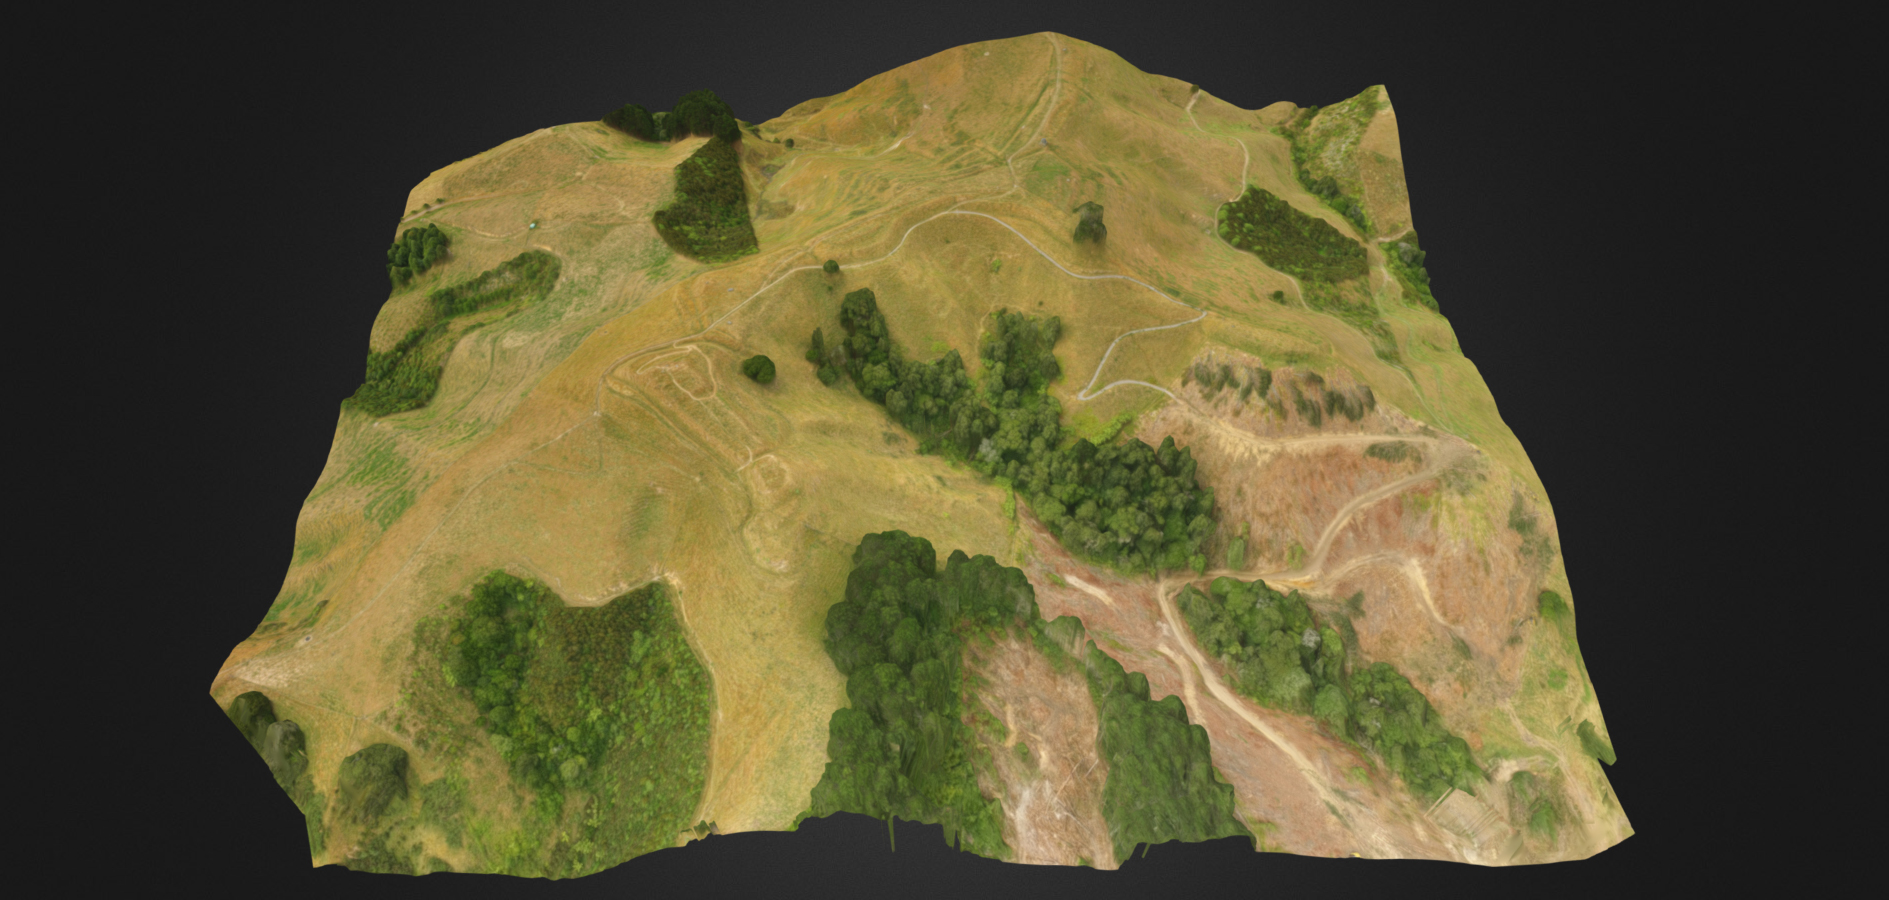 3D scan of archeological site to produce 3D Point cloud map